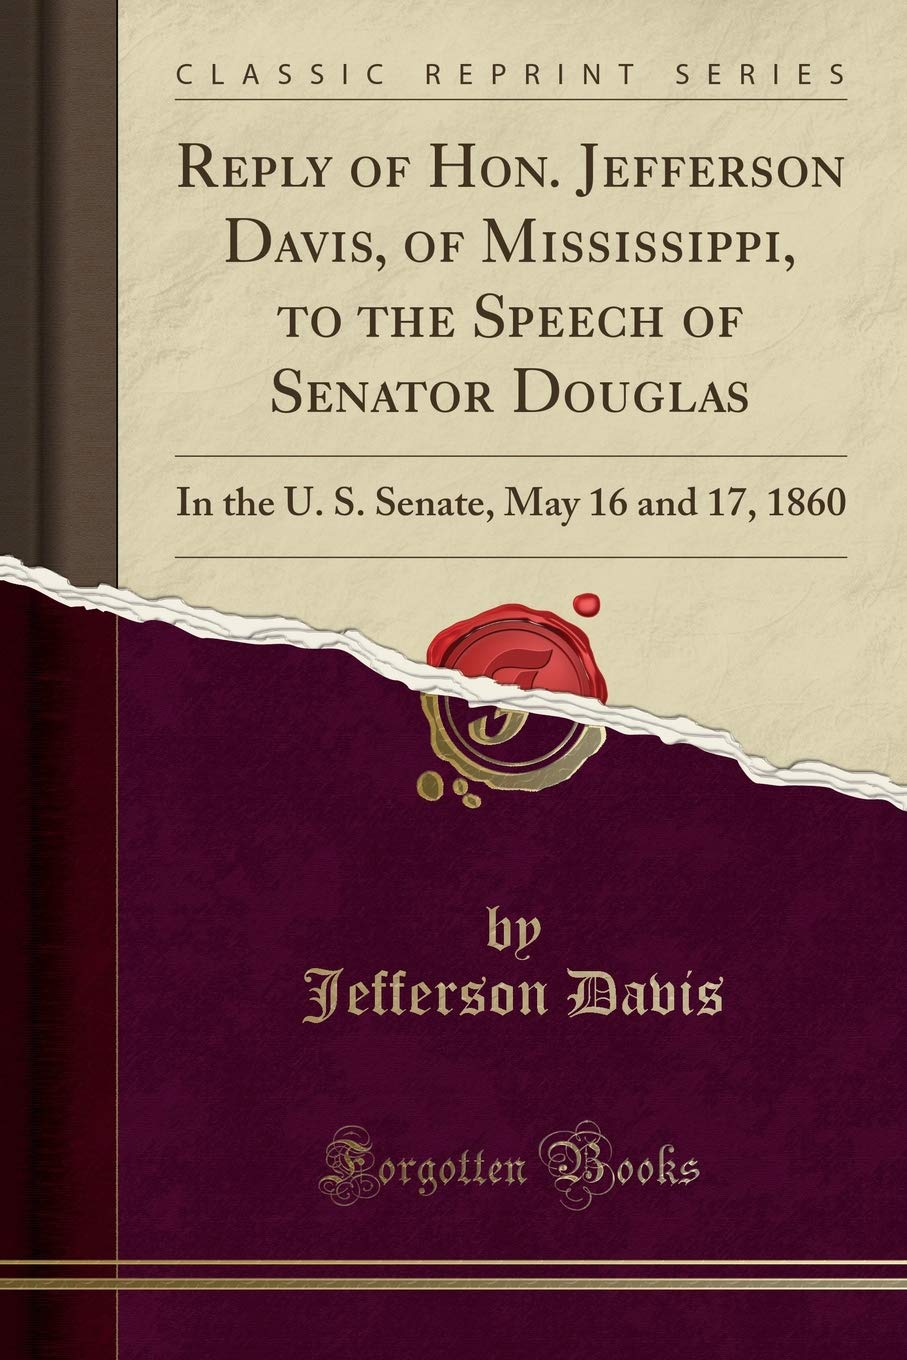 Read Online Reply of Hon. Jefferson Davis, of Mississippi, to the Speech of Senator Douglas: In the U. S. Senate, May 16 and 17, 1860 (Classic Reprint) PDF